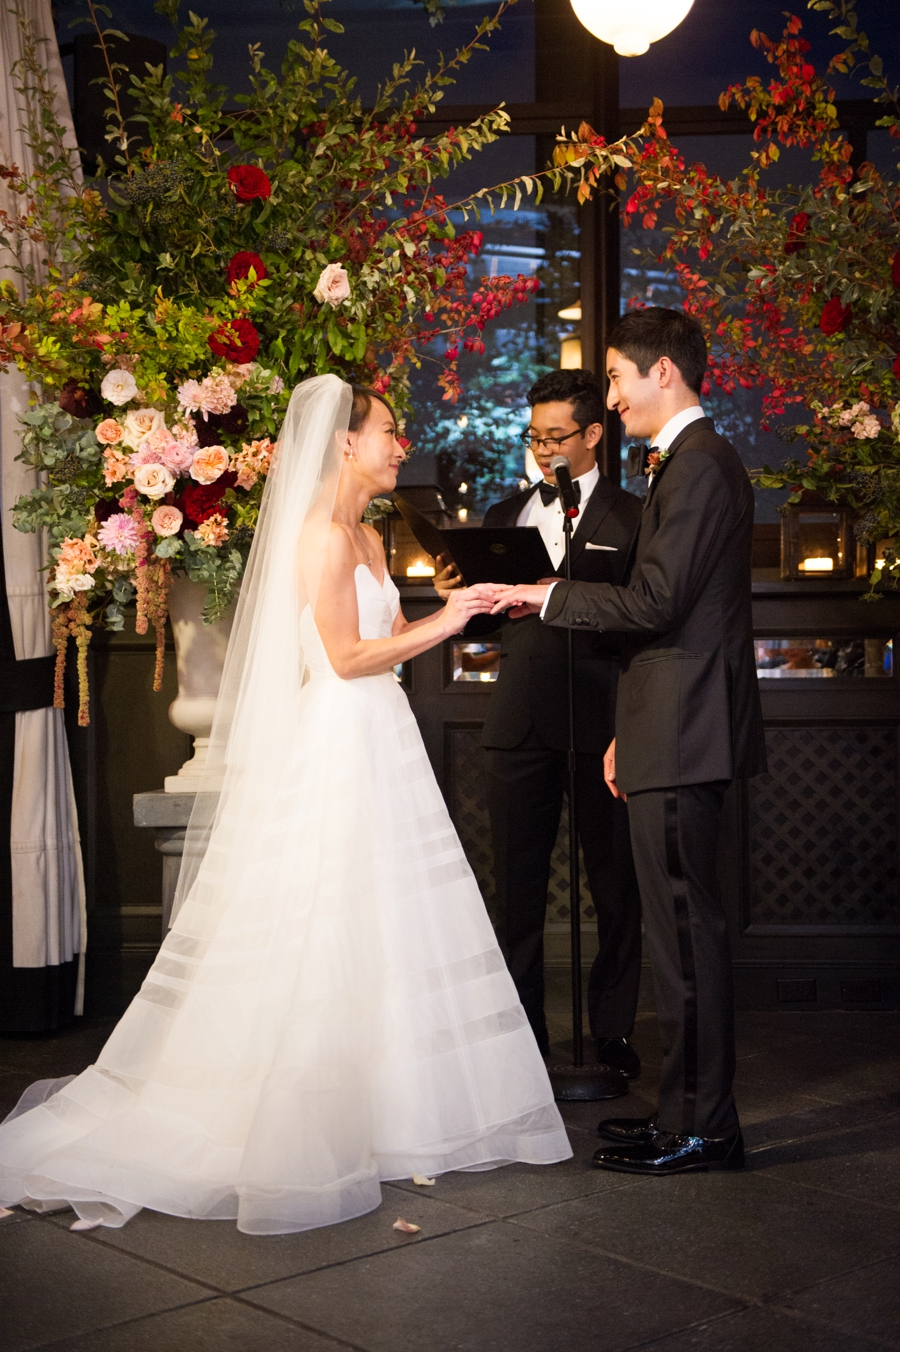 Gramercy_Park_Hotel_NYC_Wedding_KM_027.jpg